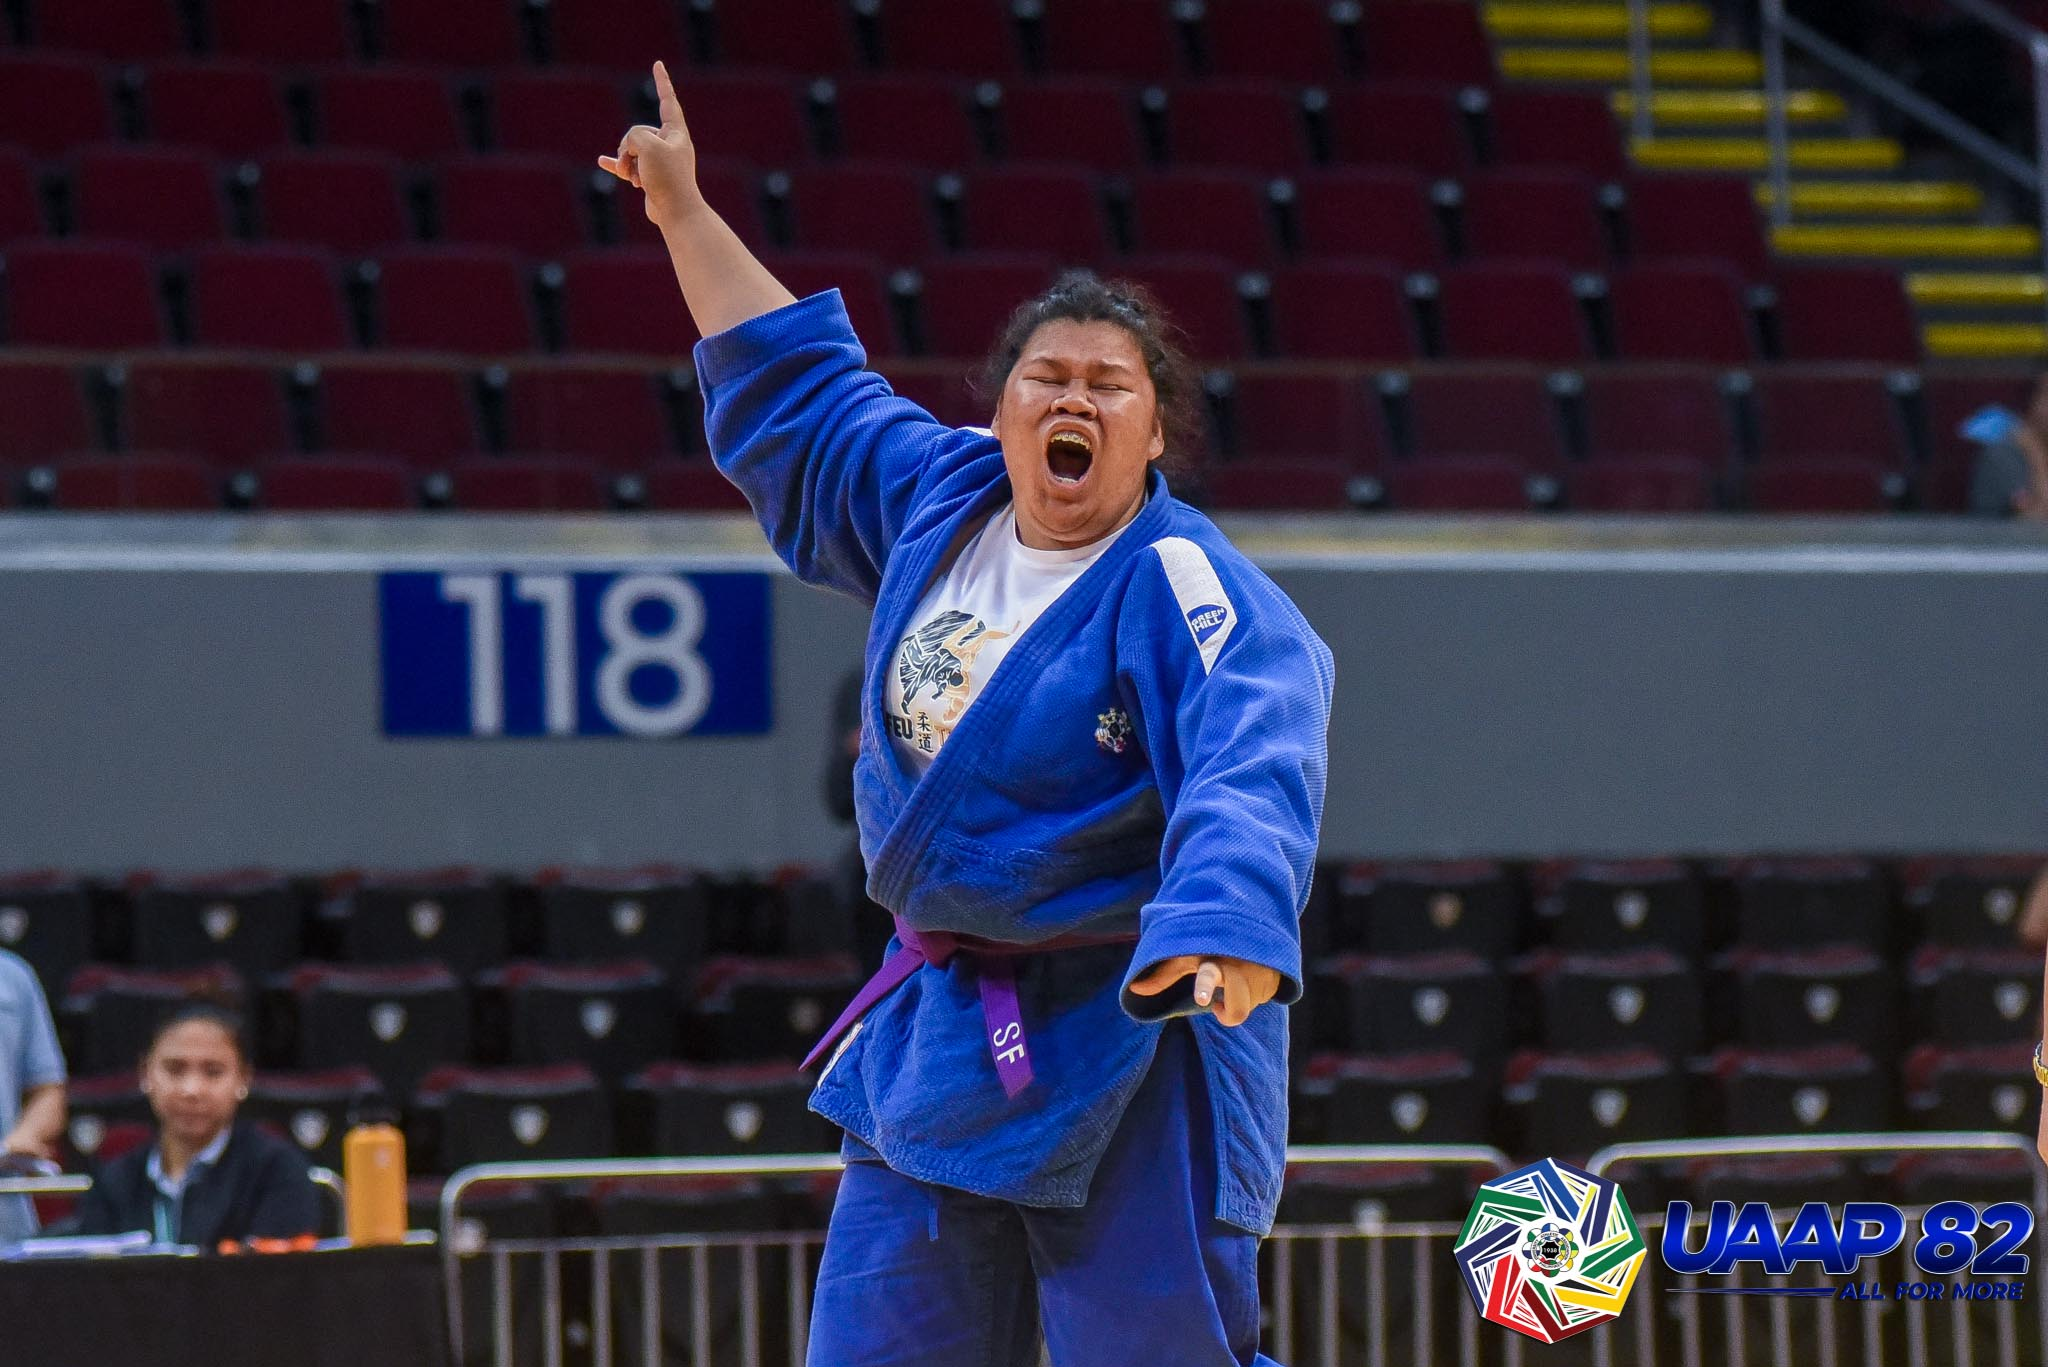 UAAP82-JUDO-JRS-78KG-GIRLS-3RD-PHOTO-BLUE-FETALVER-FEU Donaire, Saria lead DLSZ to surprising start in UAAP 82 HS Judo as Quimba sisters give UST early lead ADMU DLSU FEU Judo News UAAP UE UST  - philippine sports news